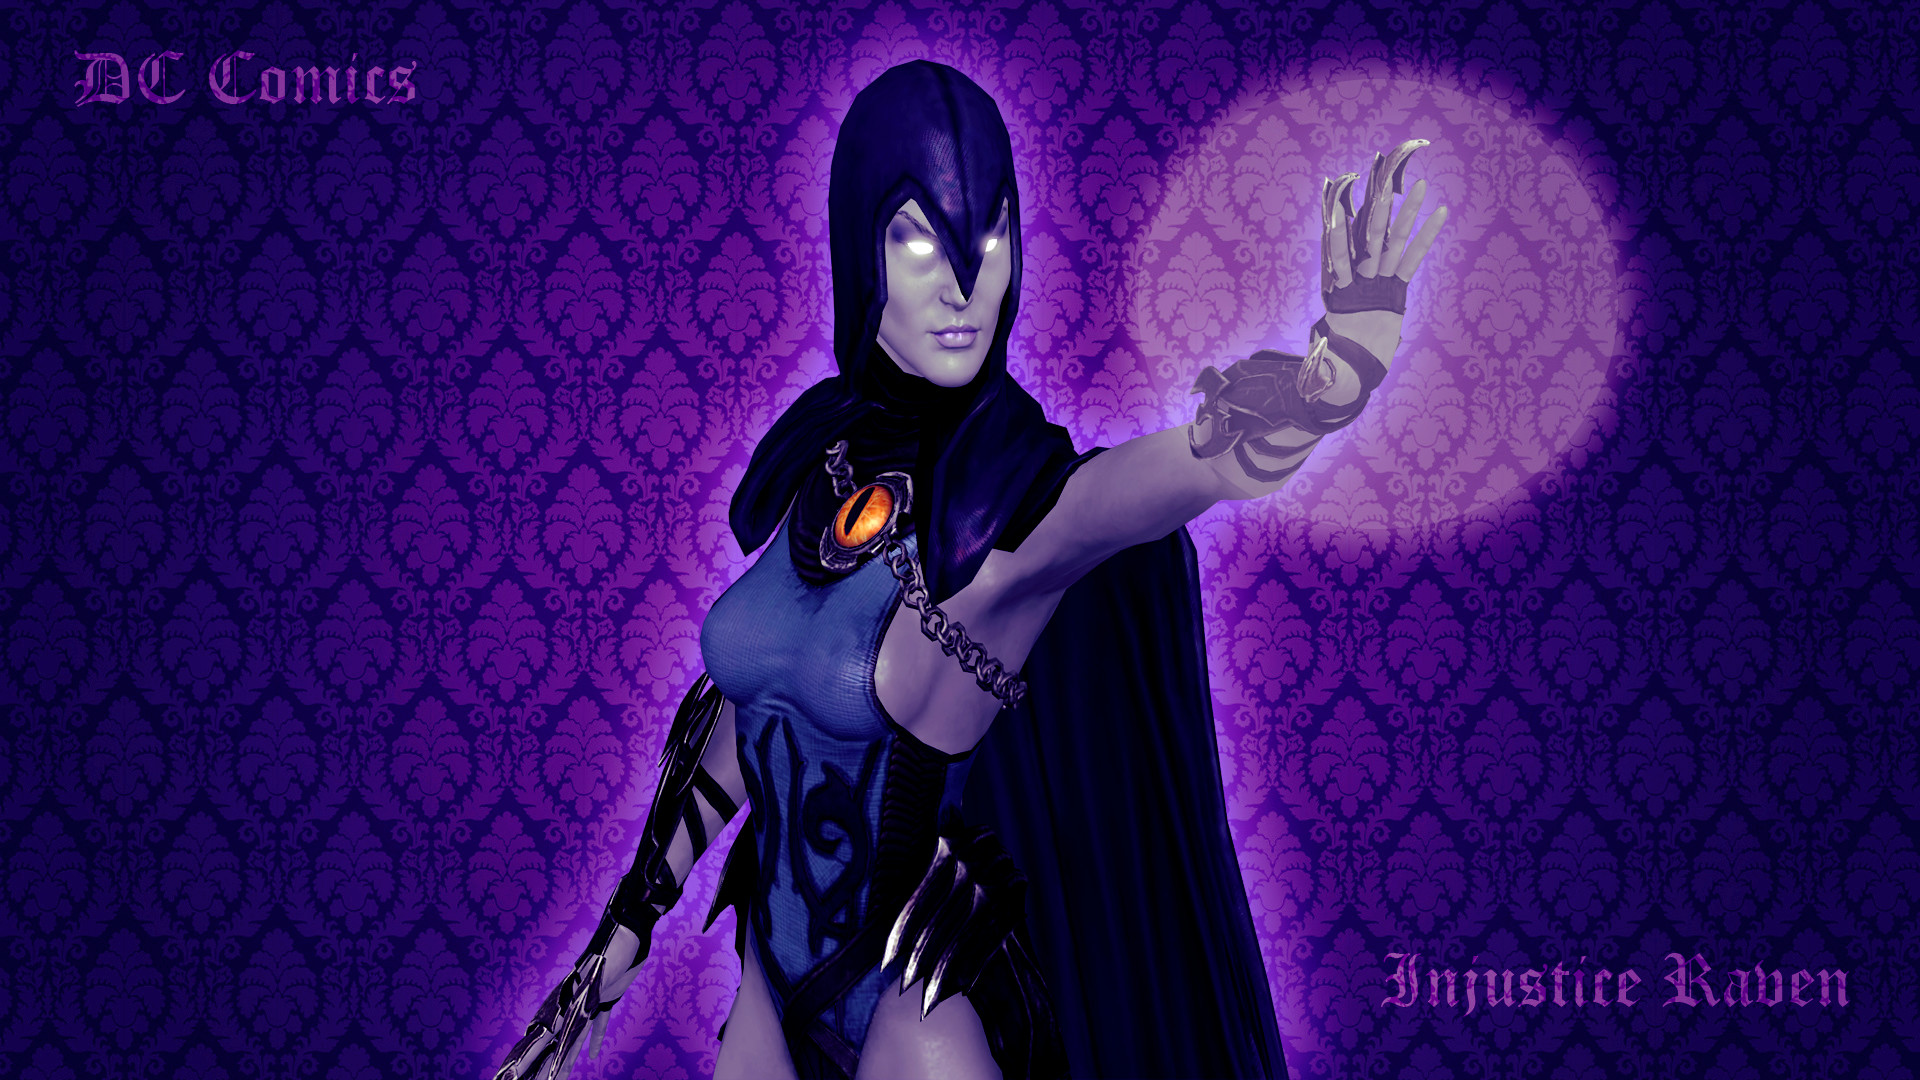 … Raven from Teen Titans/DC Comics/Injustice by sirensofwar